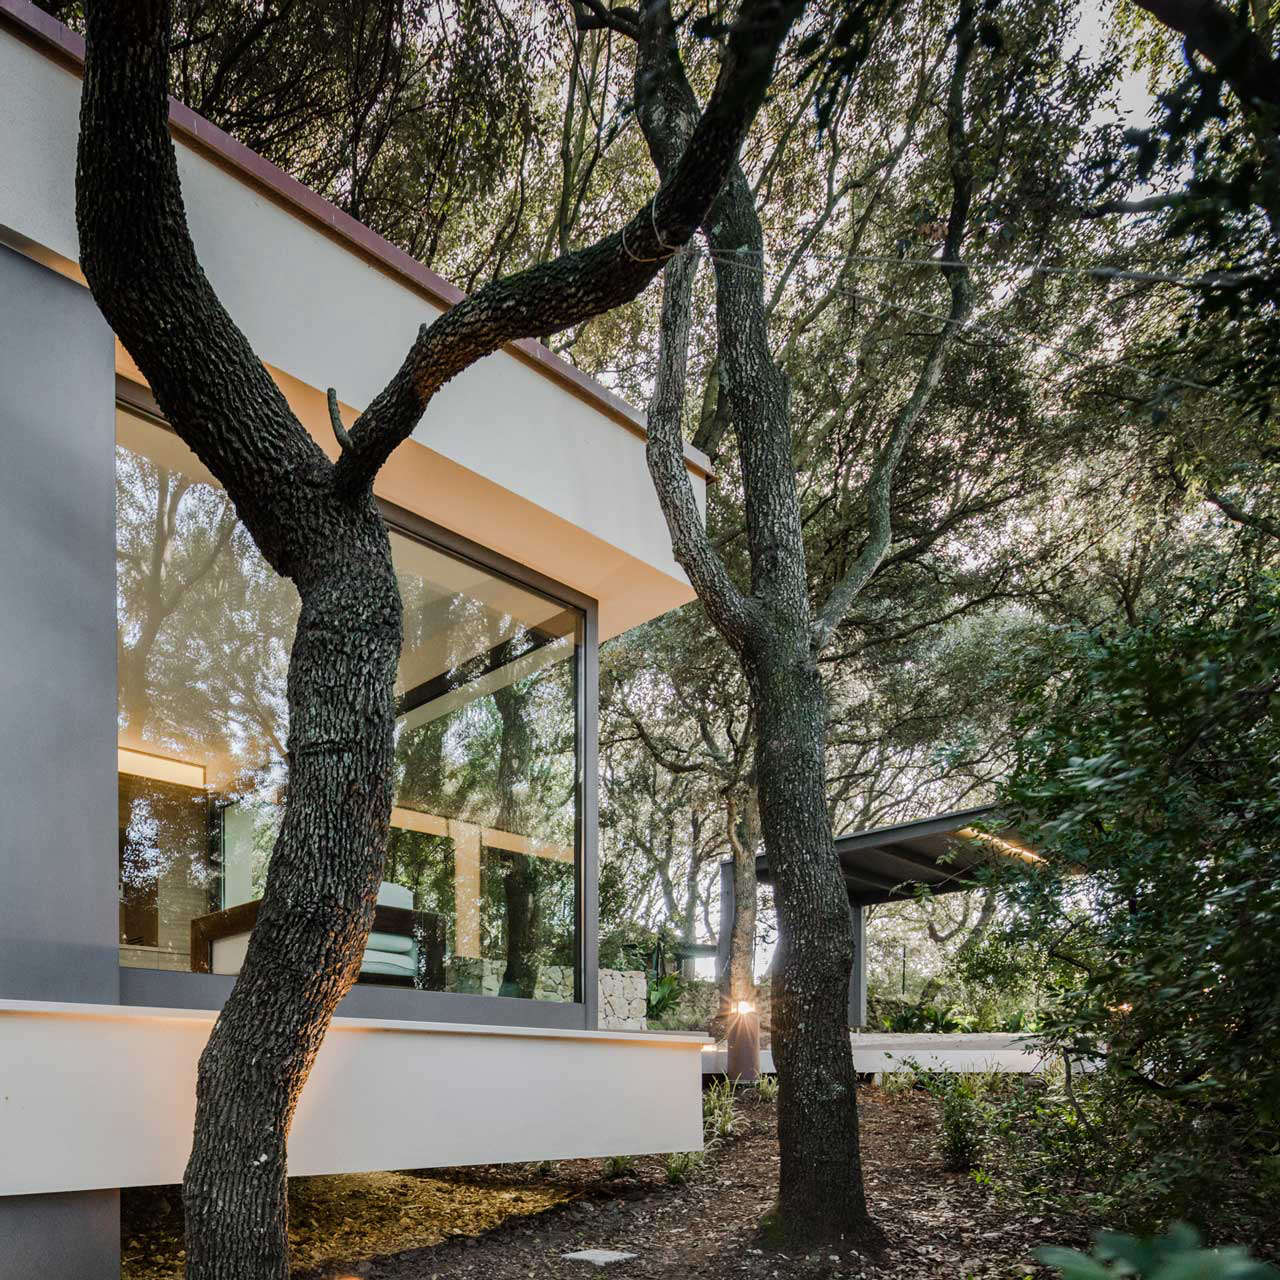 modern-house-in-forest-trees-sardinia